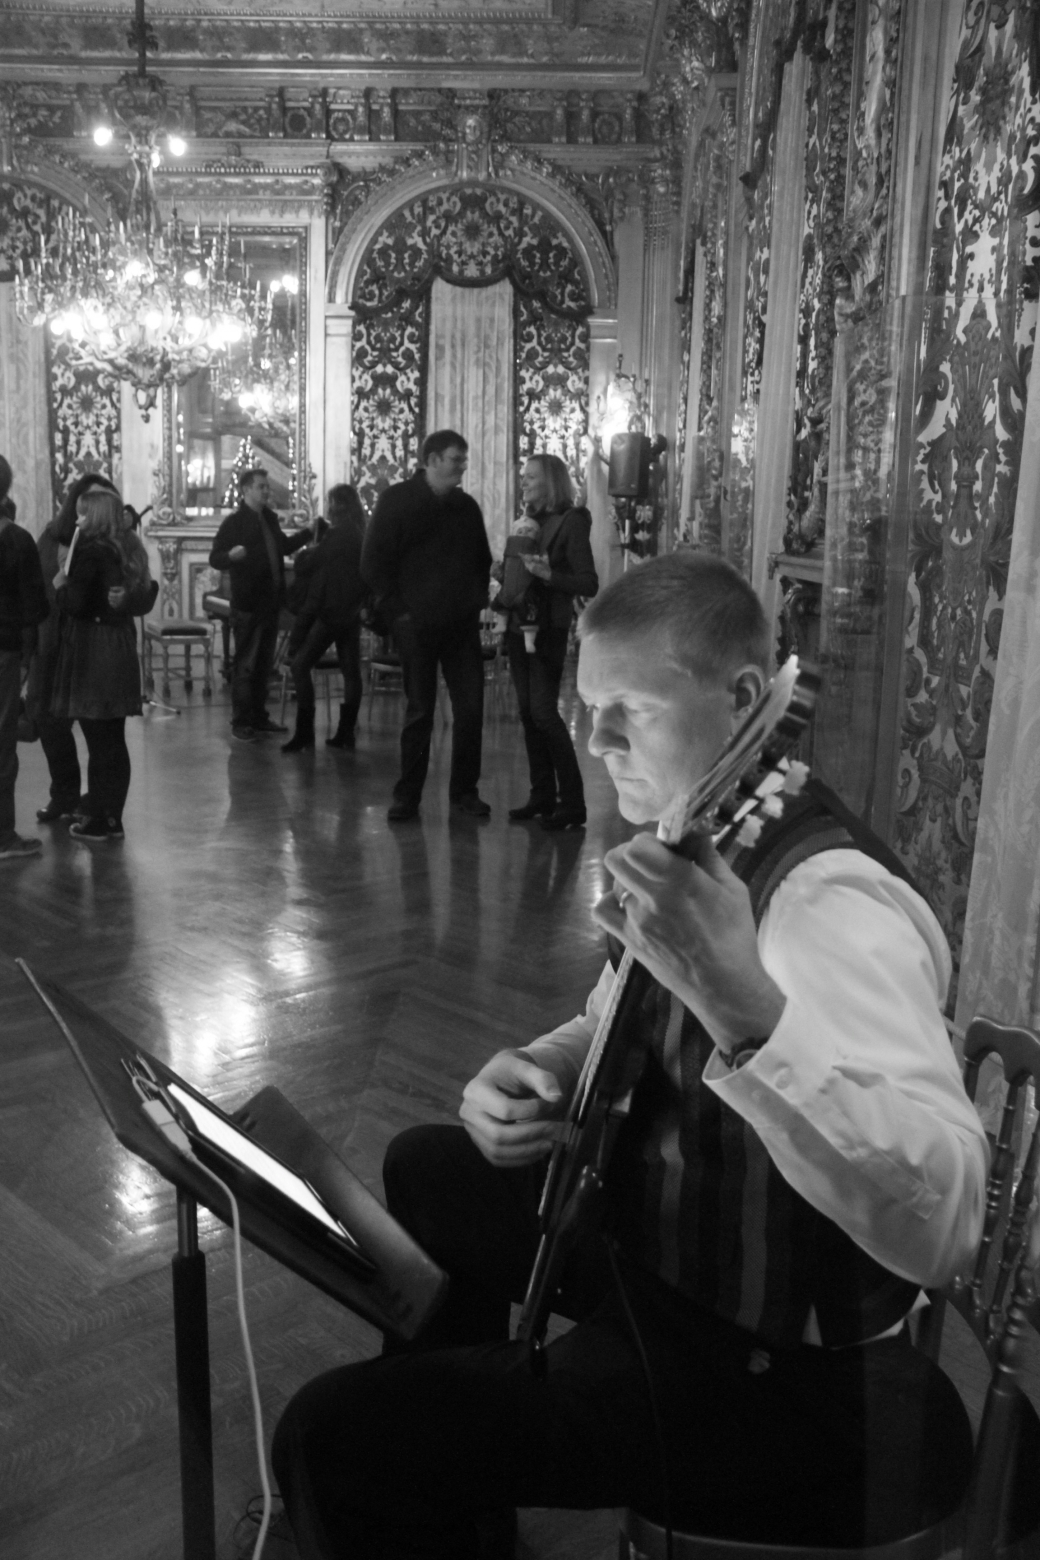 newport marble house gold room guitar player